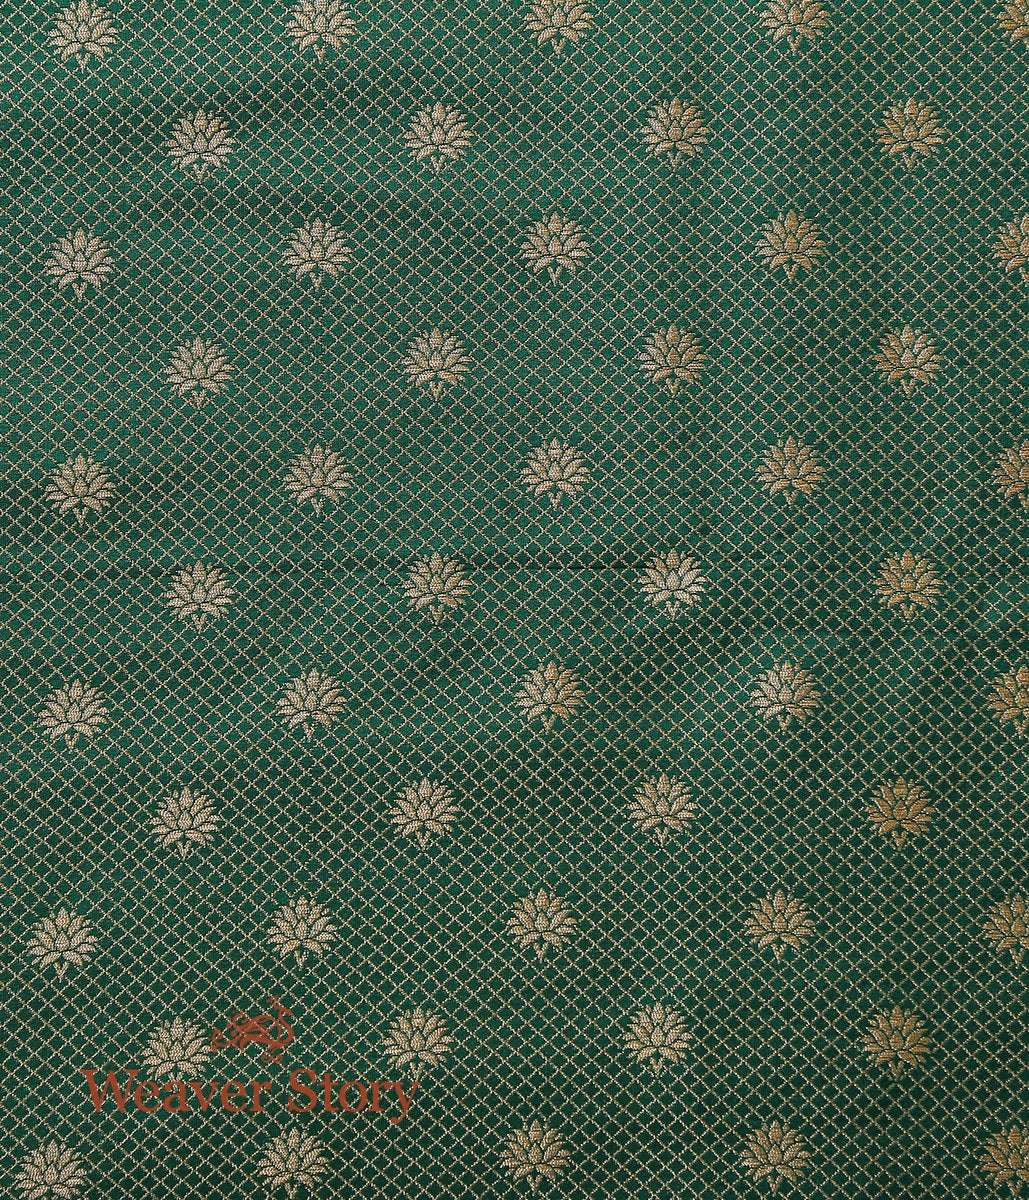 Handwoven Green Banarasi Tanchoi Fabric with Border